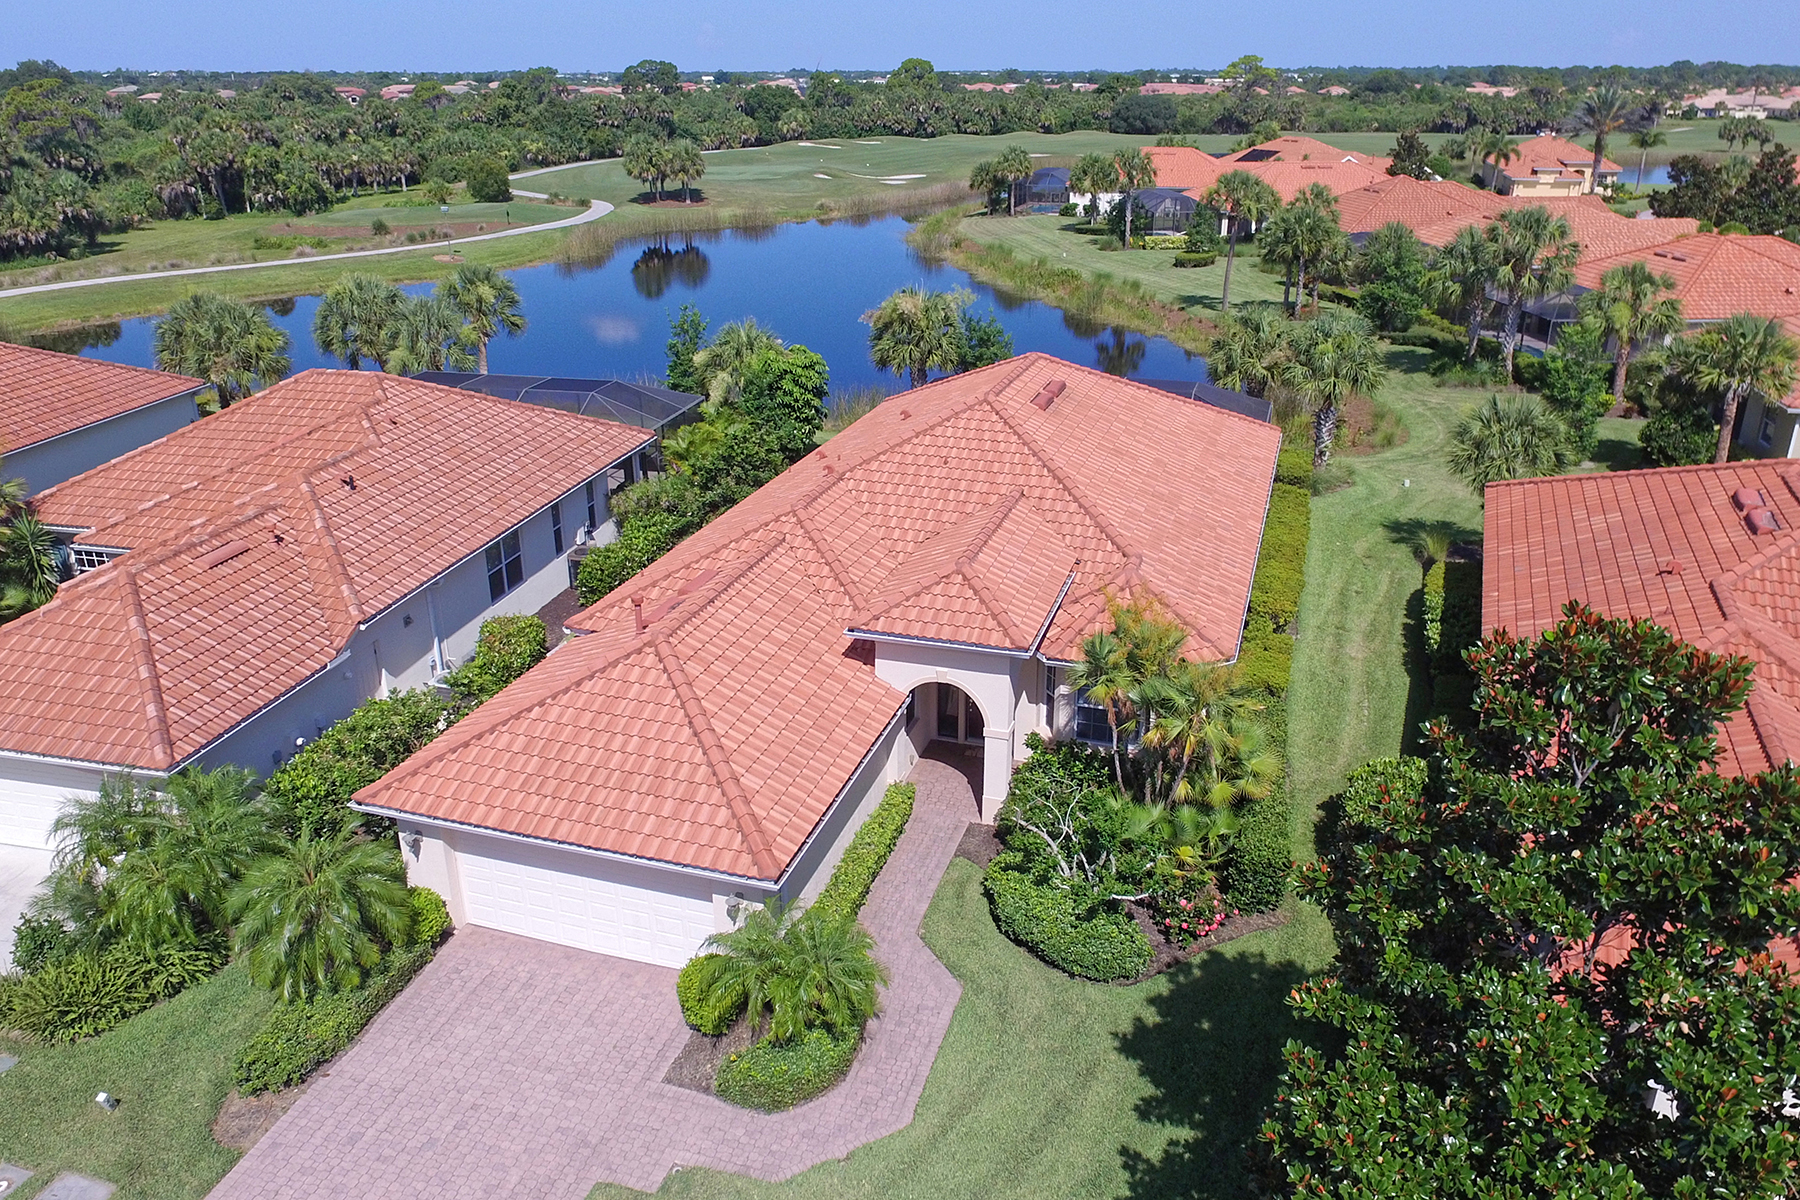 Villa per Vendita alle ore VENETIAN GOLF & RIVER CLUB 158 Treviso Ct North Venice, Florida, 34275 Stati Uniti